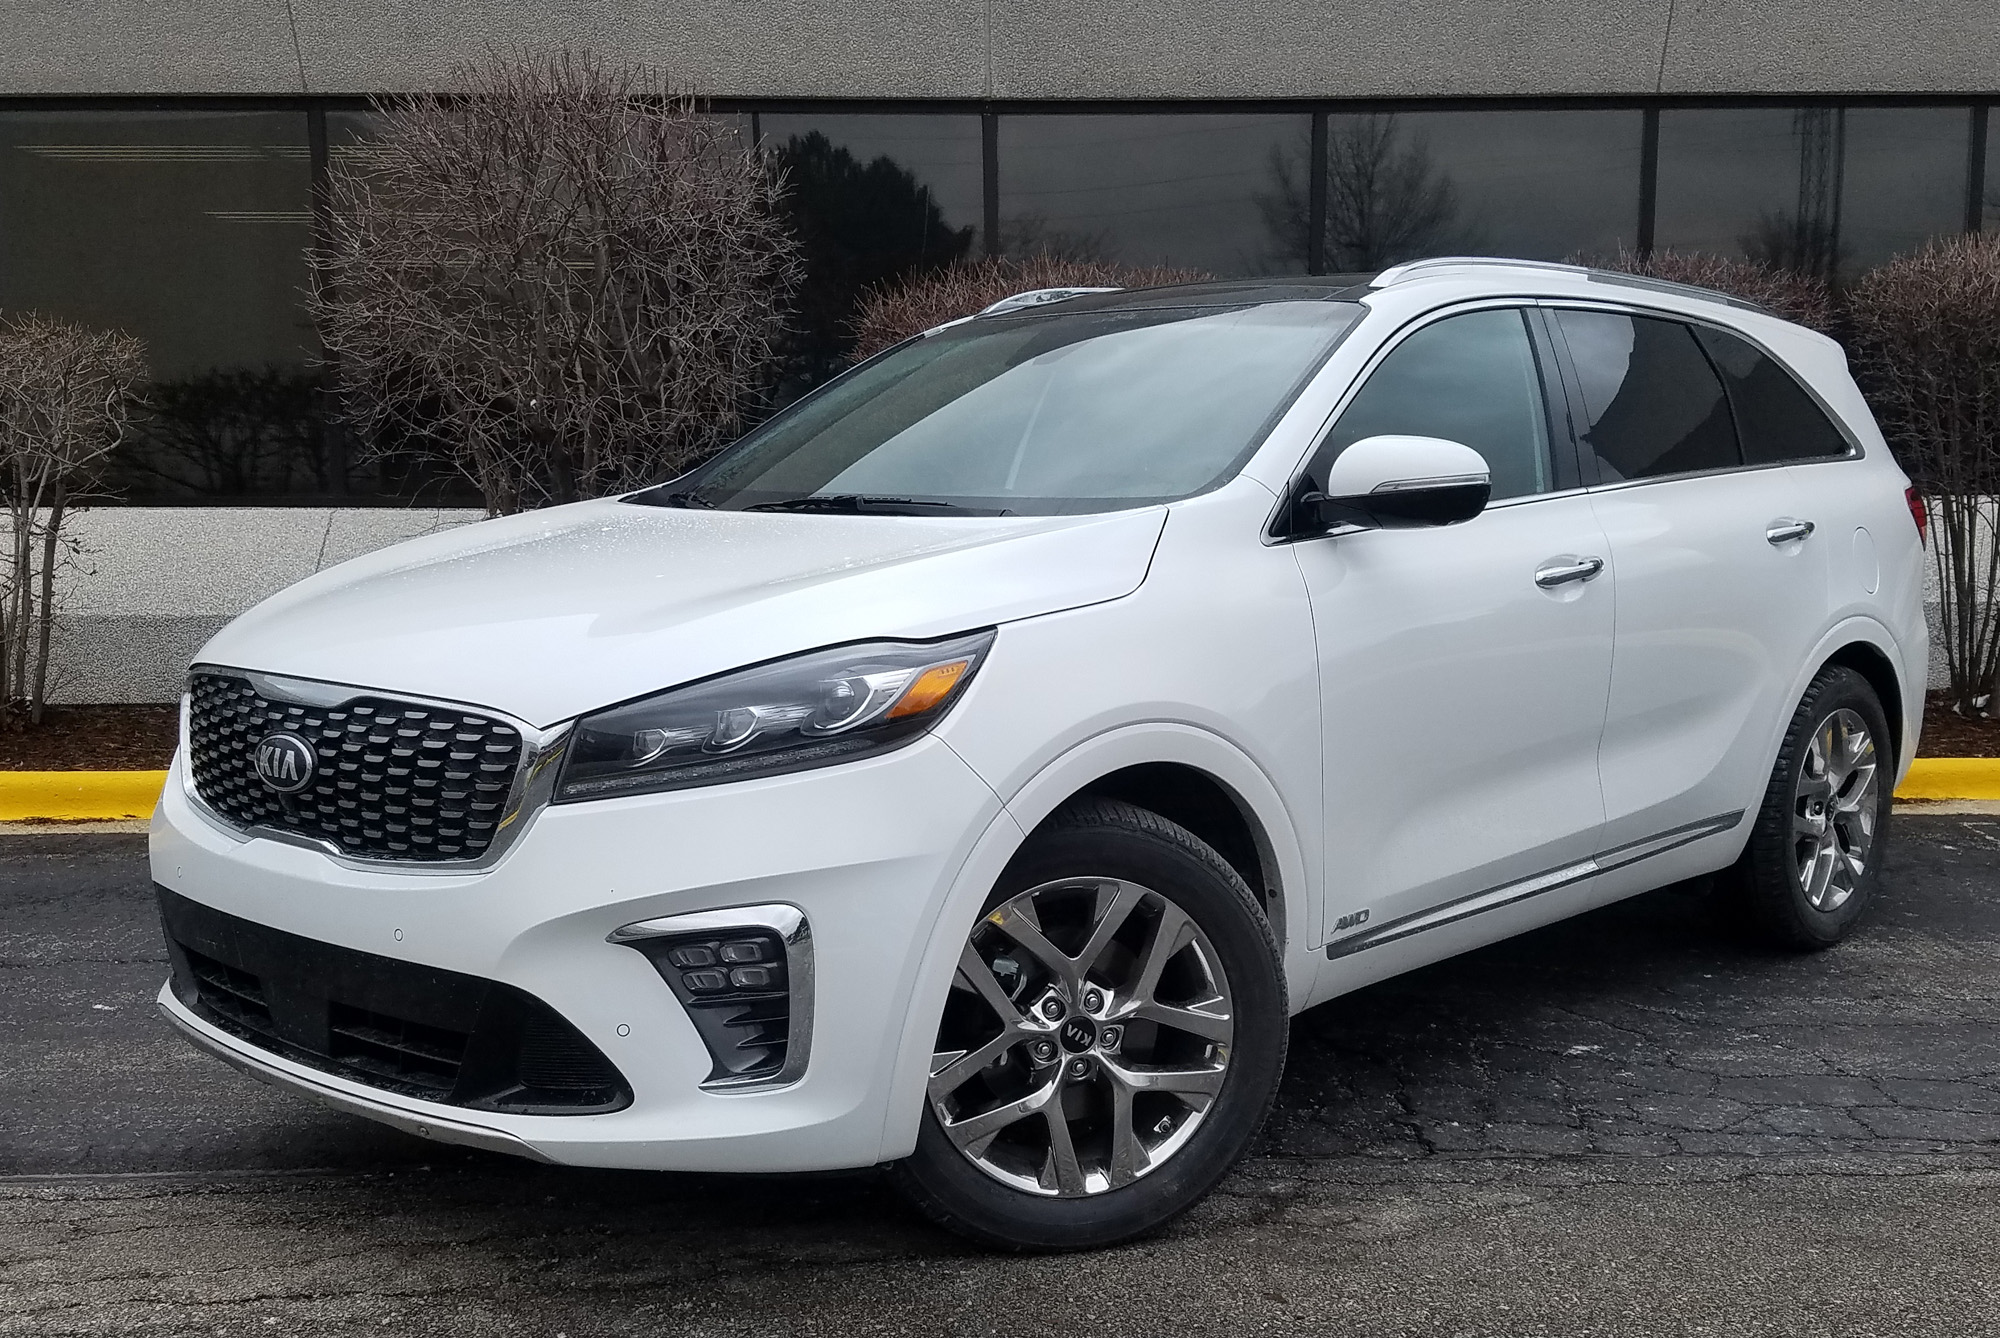 2019 Kia Sorento SXL AWD The Daily Drive